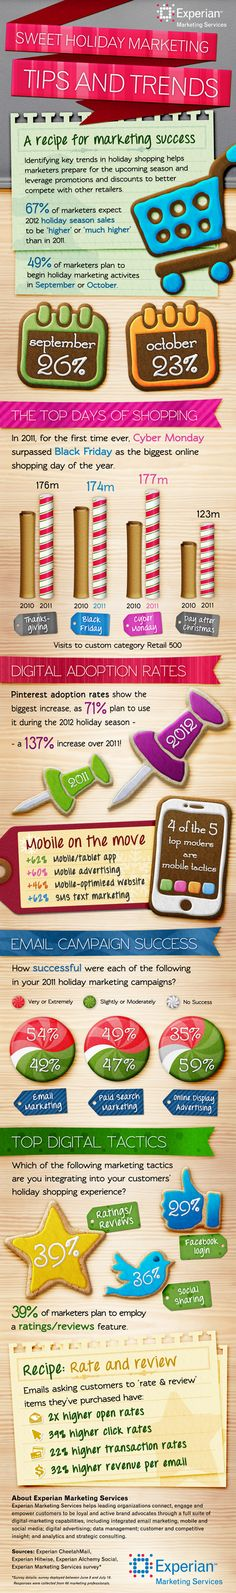 Holiday marketing infographic